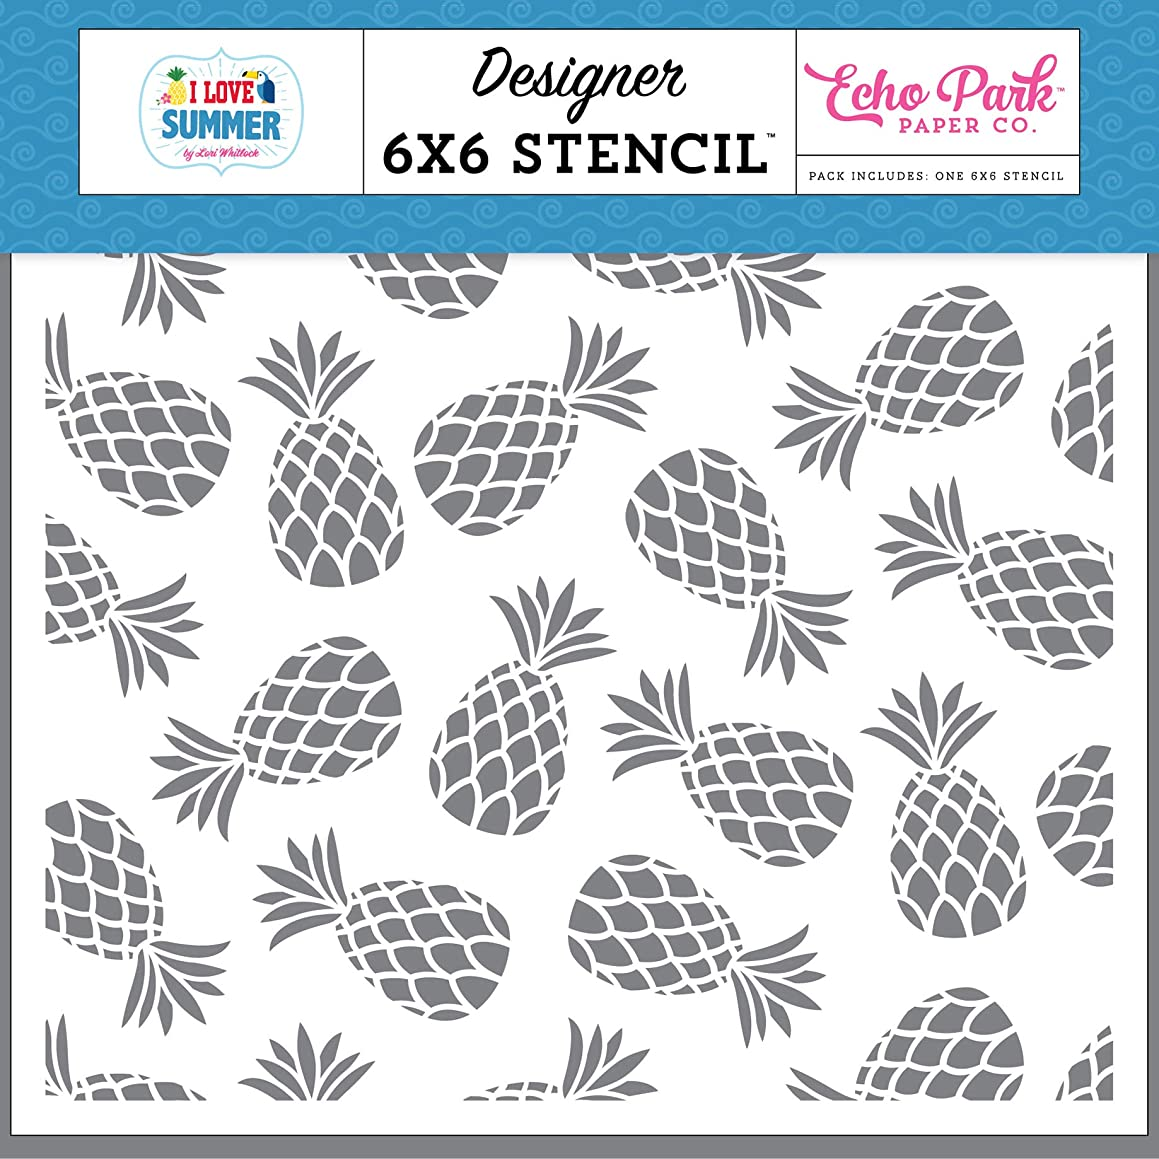 Echo Park Paper Company SU178033 Pineapple Paradise Stencil, Pink, Teal, Green, Yellow, Blue, red